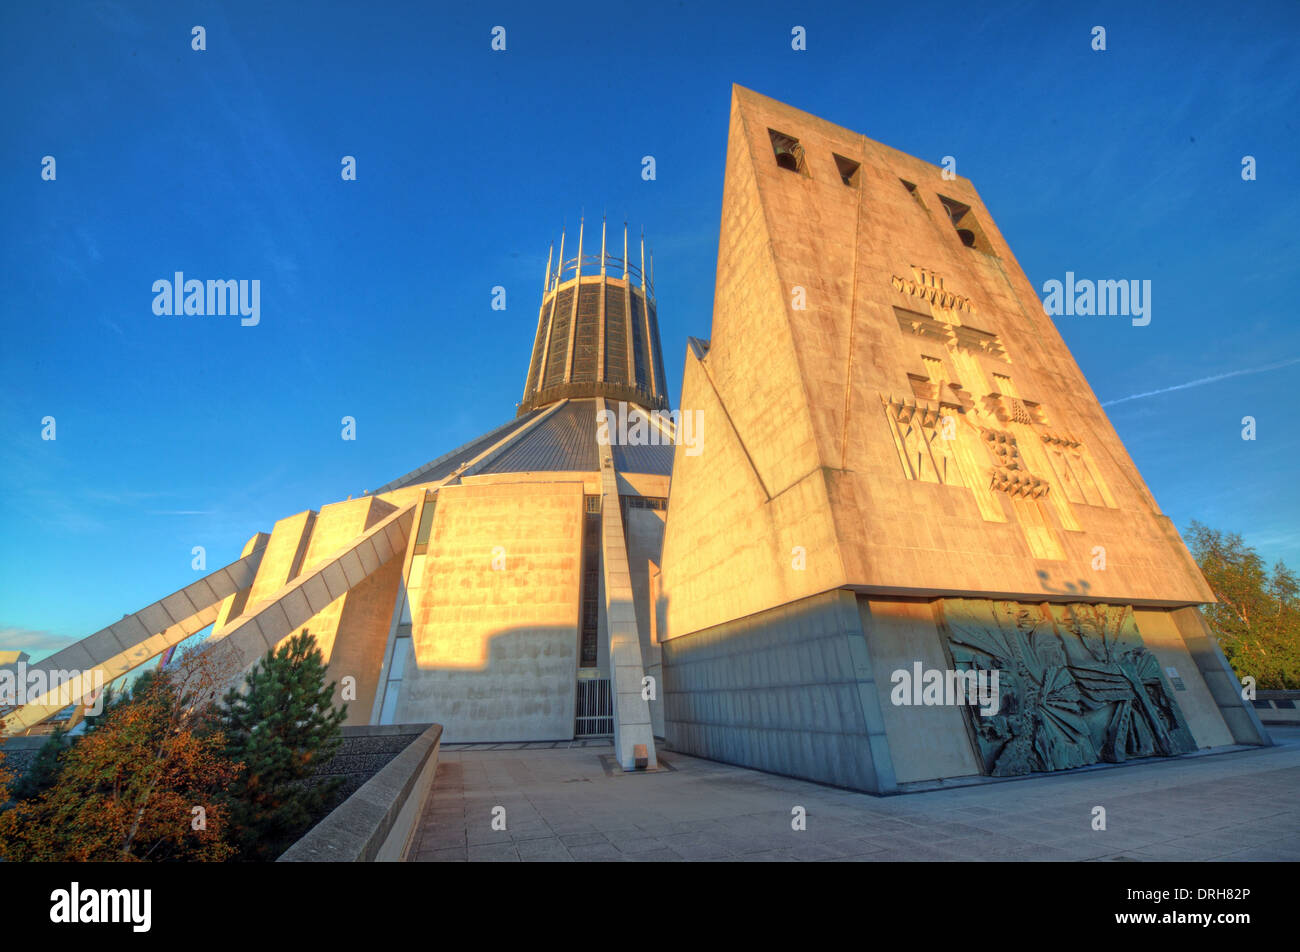 Hope,st,street,Roman,Catholic,Archdiocese,of,Liverpool,student,students,tourist,tourism,travel,to,tour,Metropolitan,Cathedral,of,Christ,the,King,(usually,known,as,Liverpool,Metropolitan,Cathedral),is,the,cathedral,of,the,Roman,Catholic,Archdiocese,of,Liverpool,in,Liverpool,England. The cathedral,2,Gotonysmith Christ The King,England UK Lutyen Lutyens Lutyens,Buy Pictures of,Buy Images Of